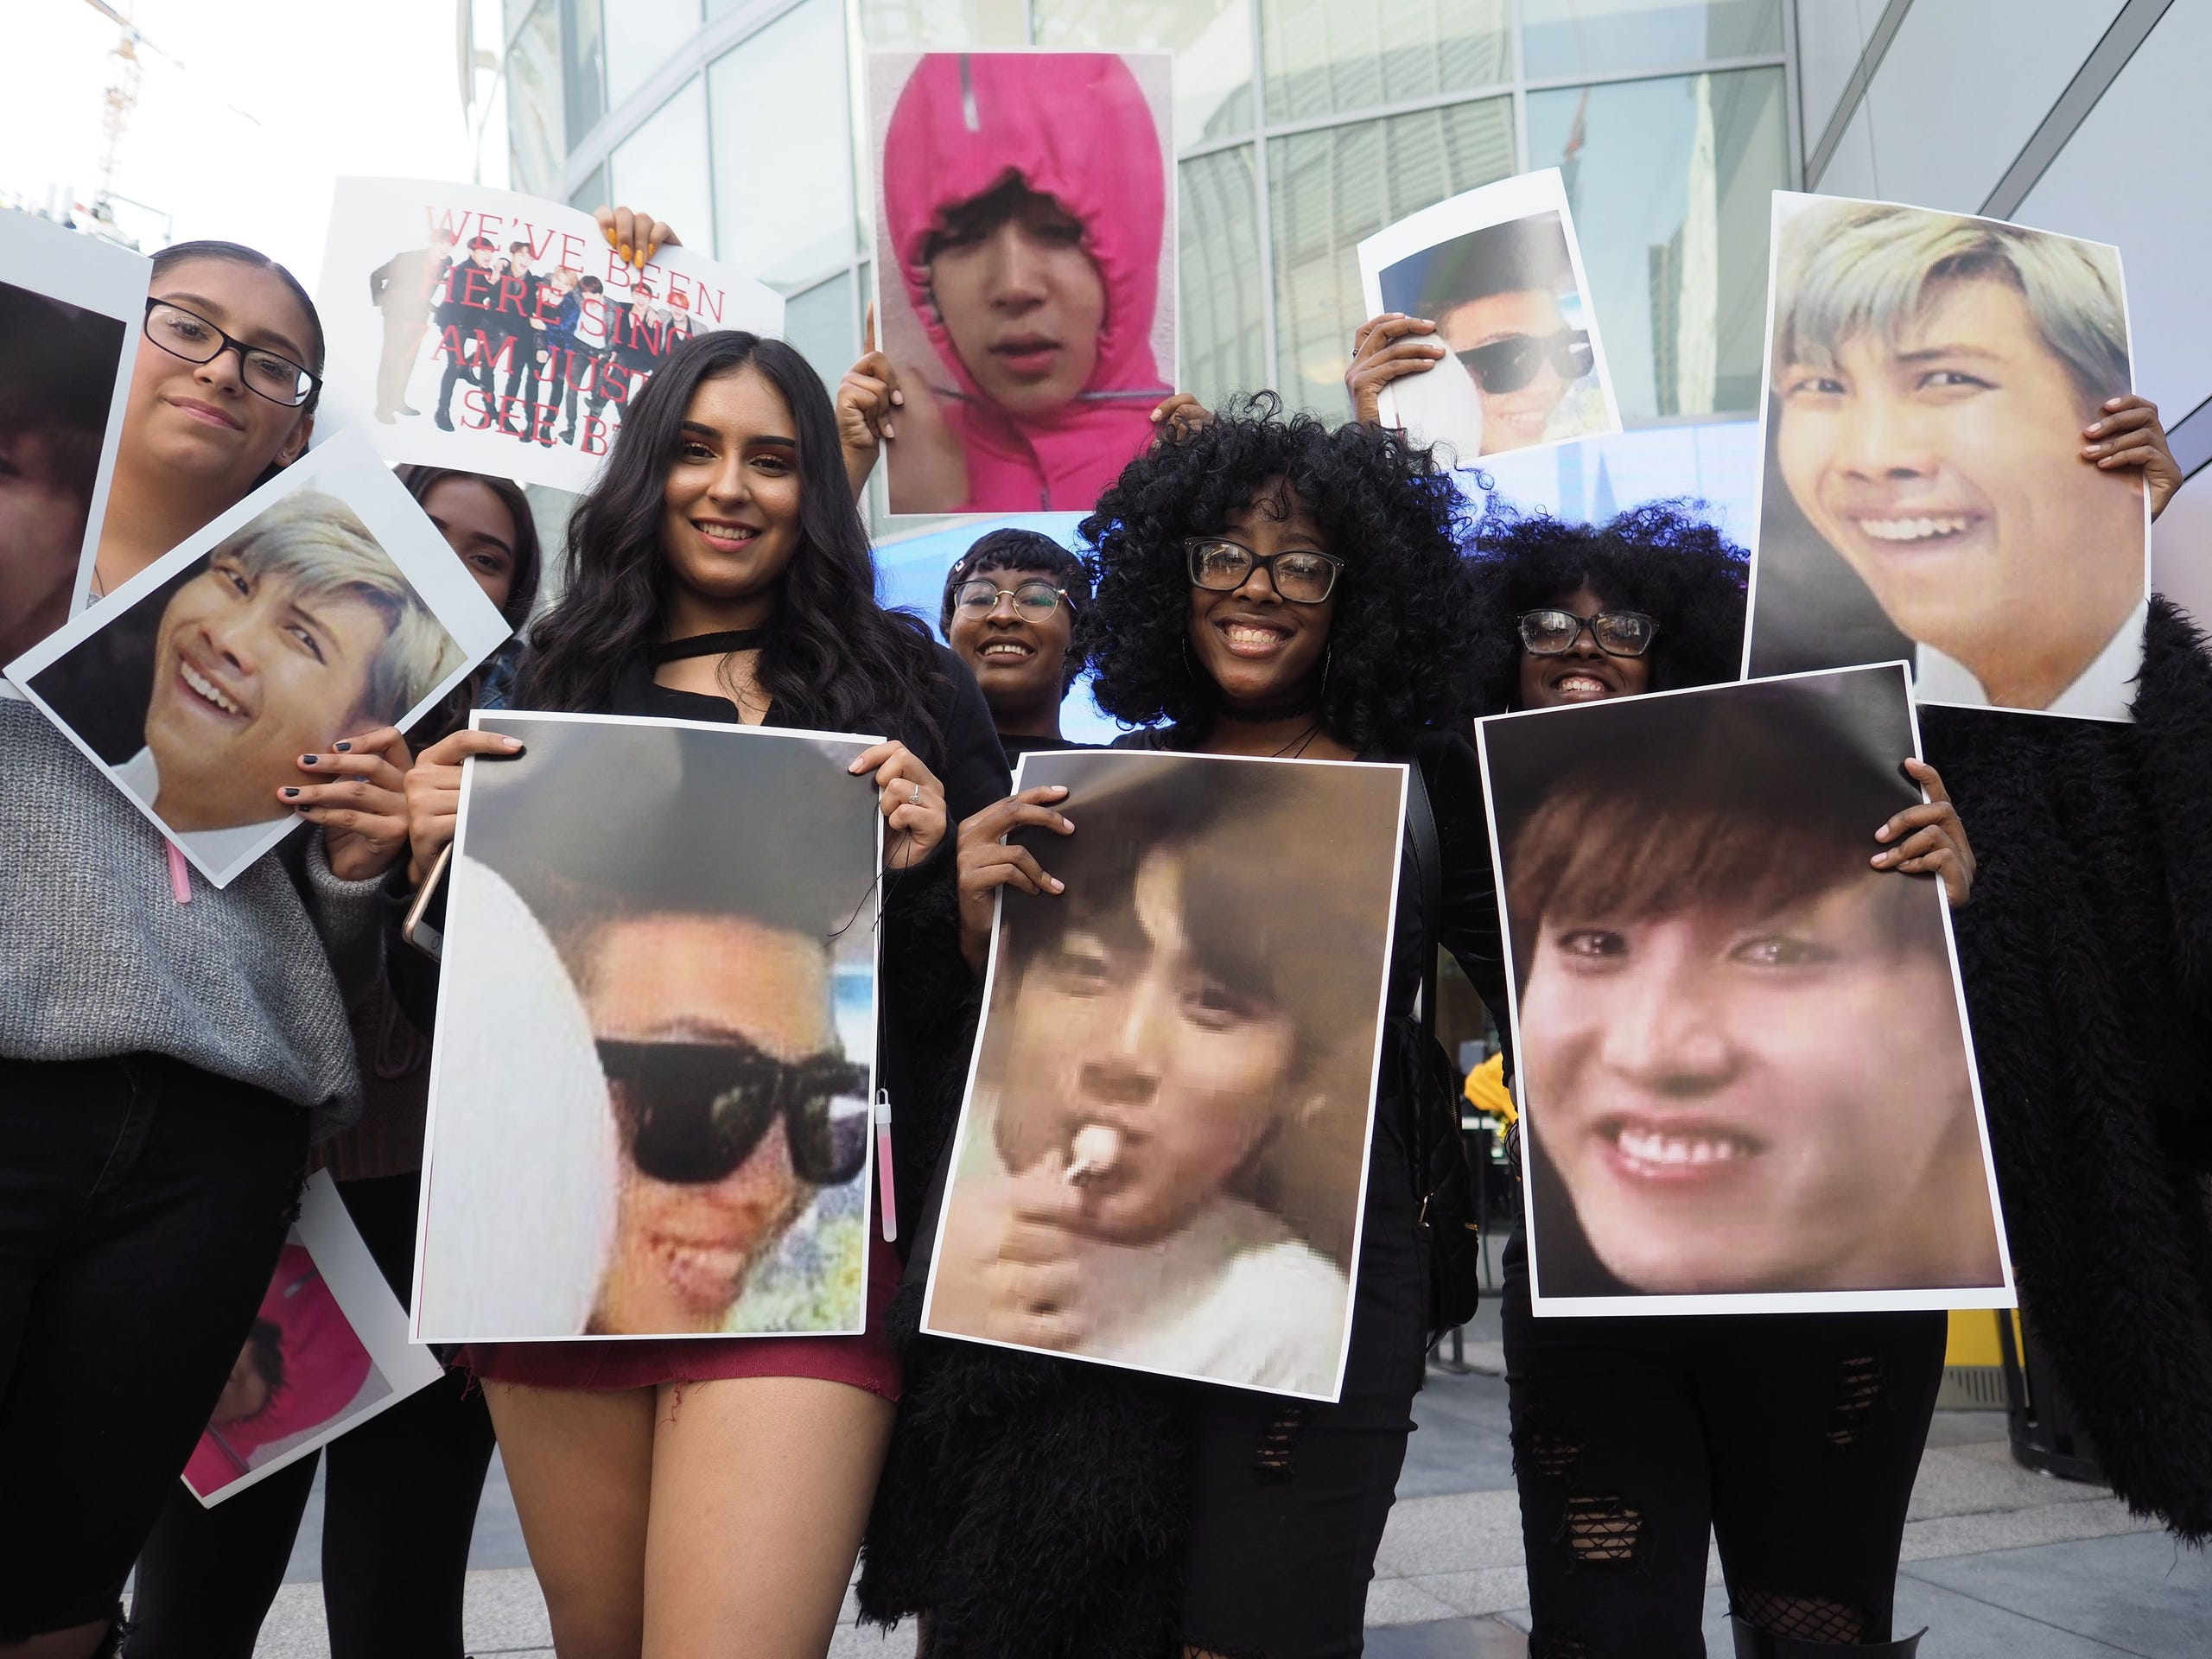 Fans of the Korean boy band group BTS pose with photos of their idols outside the 2017 American Music Awards, November 19, 2017 at the Microsoft Theater at LA Live, in Los Angeles, California. / AFP PHOTO / Robyn BeckROBYN BECK/AFP/Getty Images ORIG FILE ID: AFP_UF1XS